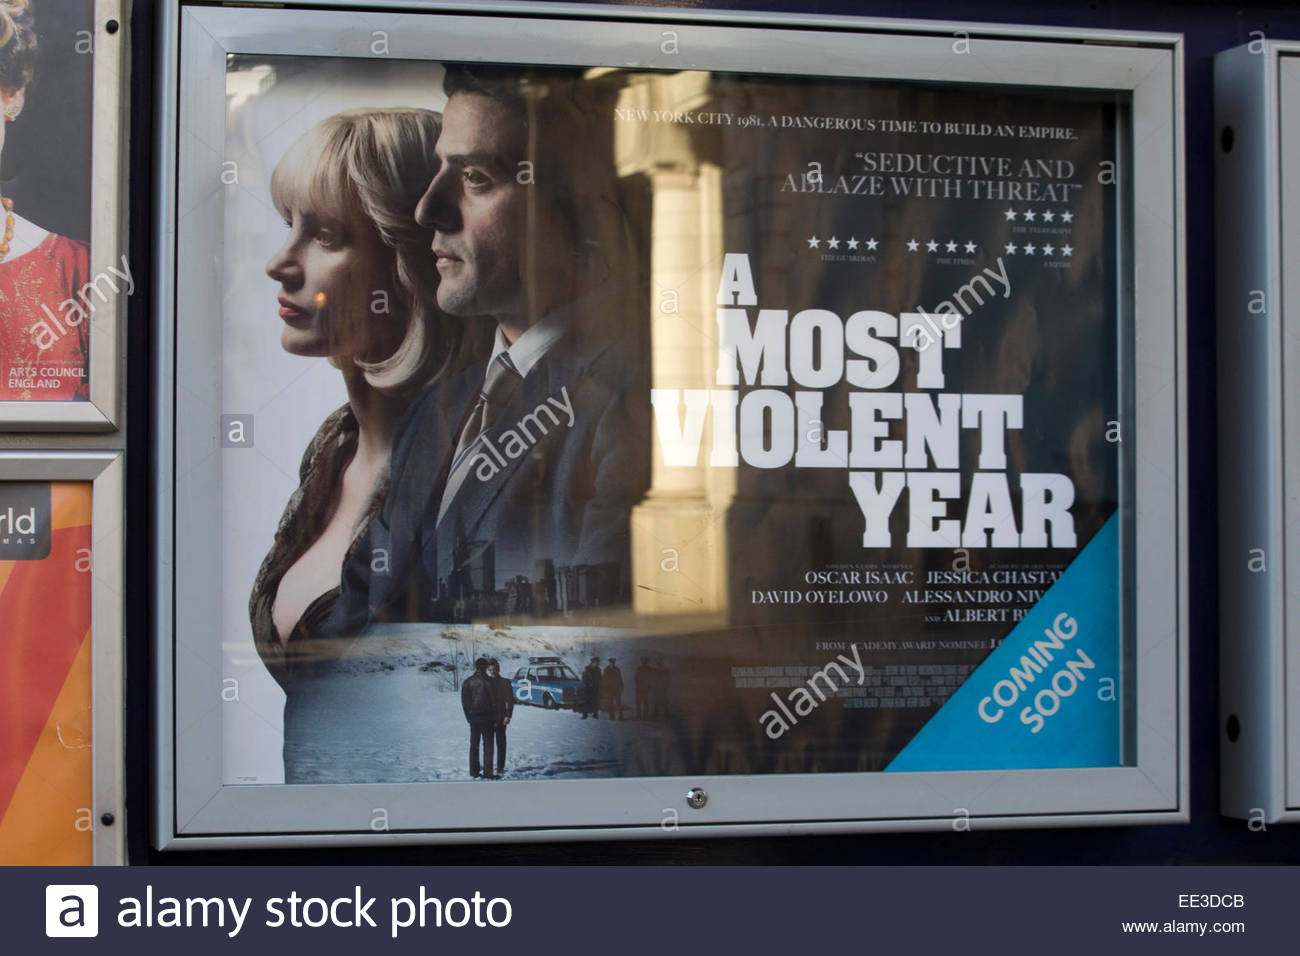 Movie poster advertising the film A Most Violent Year - Stock Image